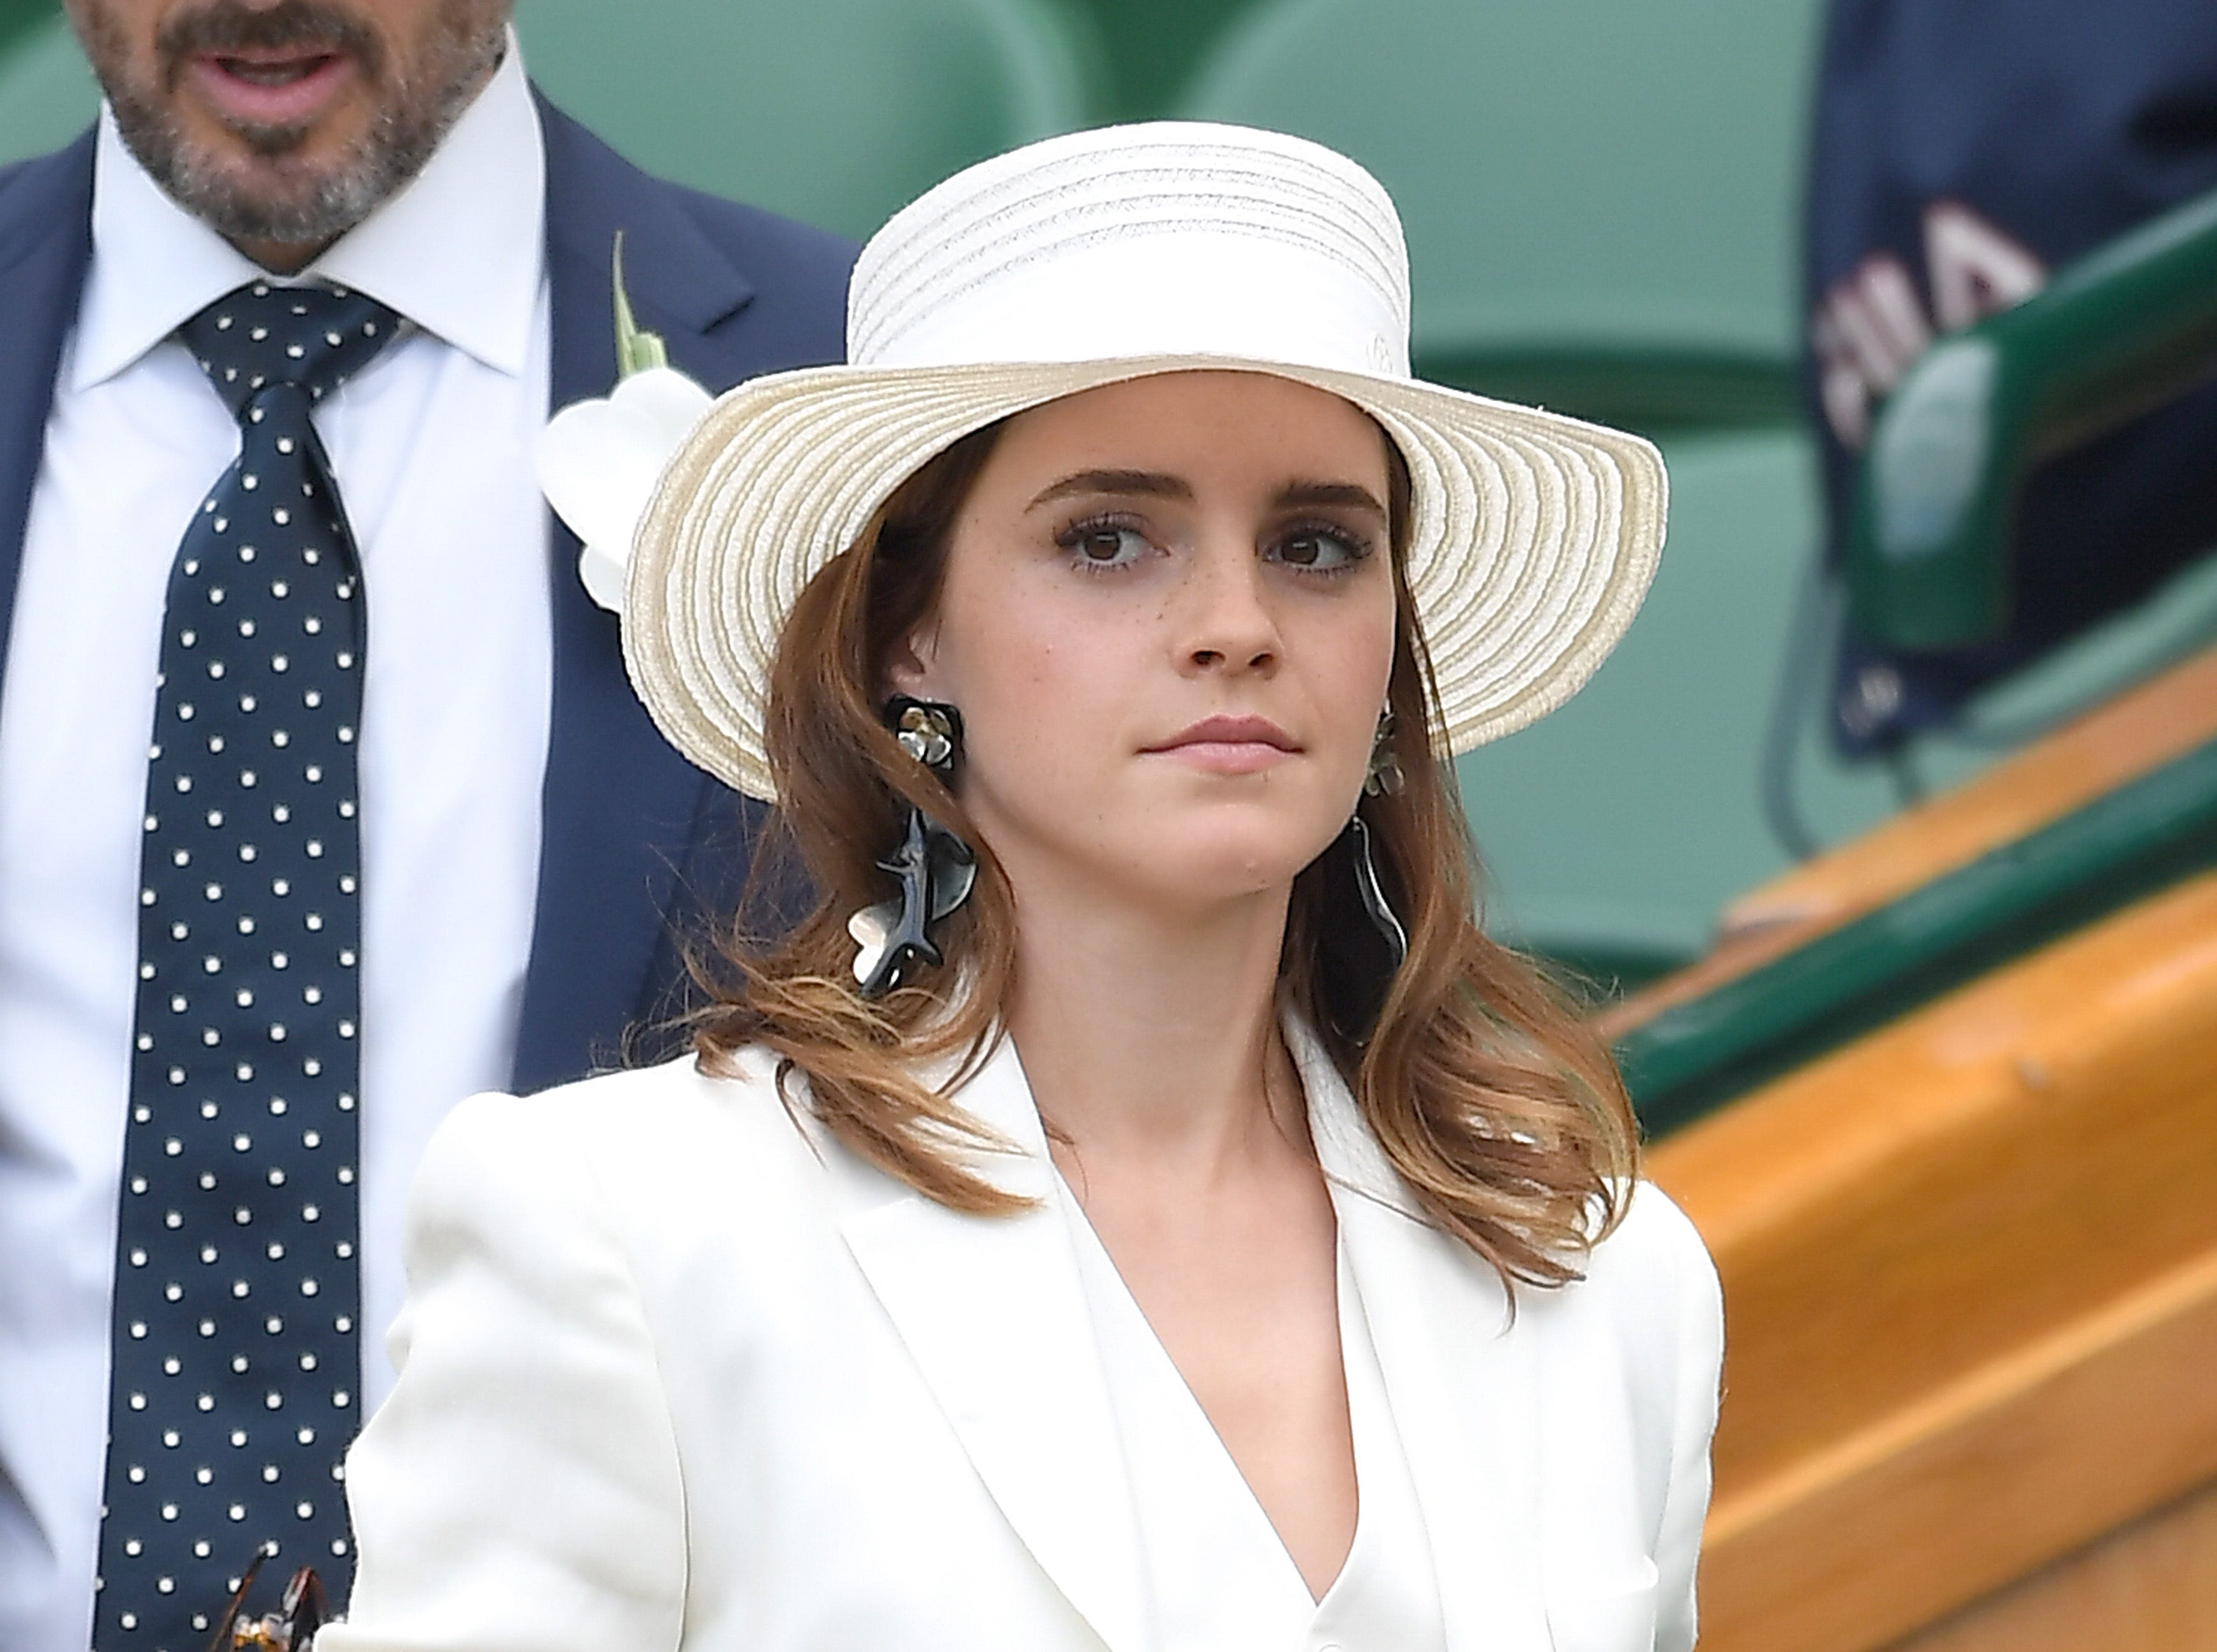 LONDON, ENGLAND - JULY 14:  Emma Watson attends day twelve of the Wimbledon Tennis Championships at the All England Lawn Tennis and Croquet Club on July 14, 2018 in London, England.  (Photo by Karwai Tang/WireImage ) ORG XMIT: 775185493 ORIG FILE ID: 998520868